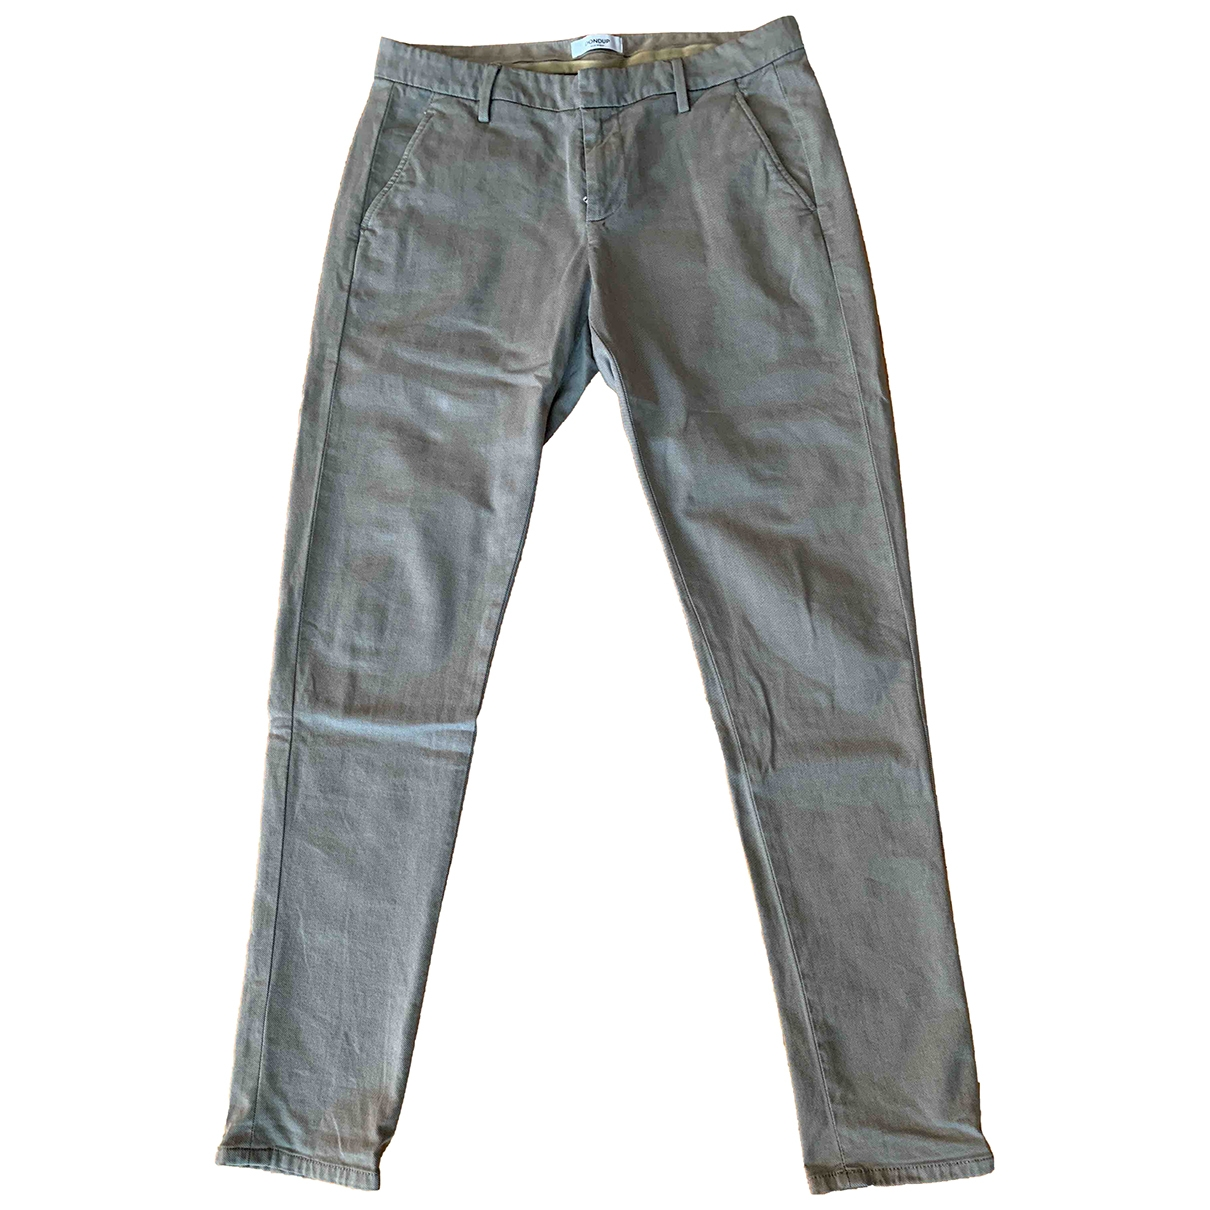 Dondup \N Grey Cotton Trousers for Men L International